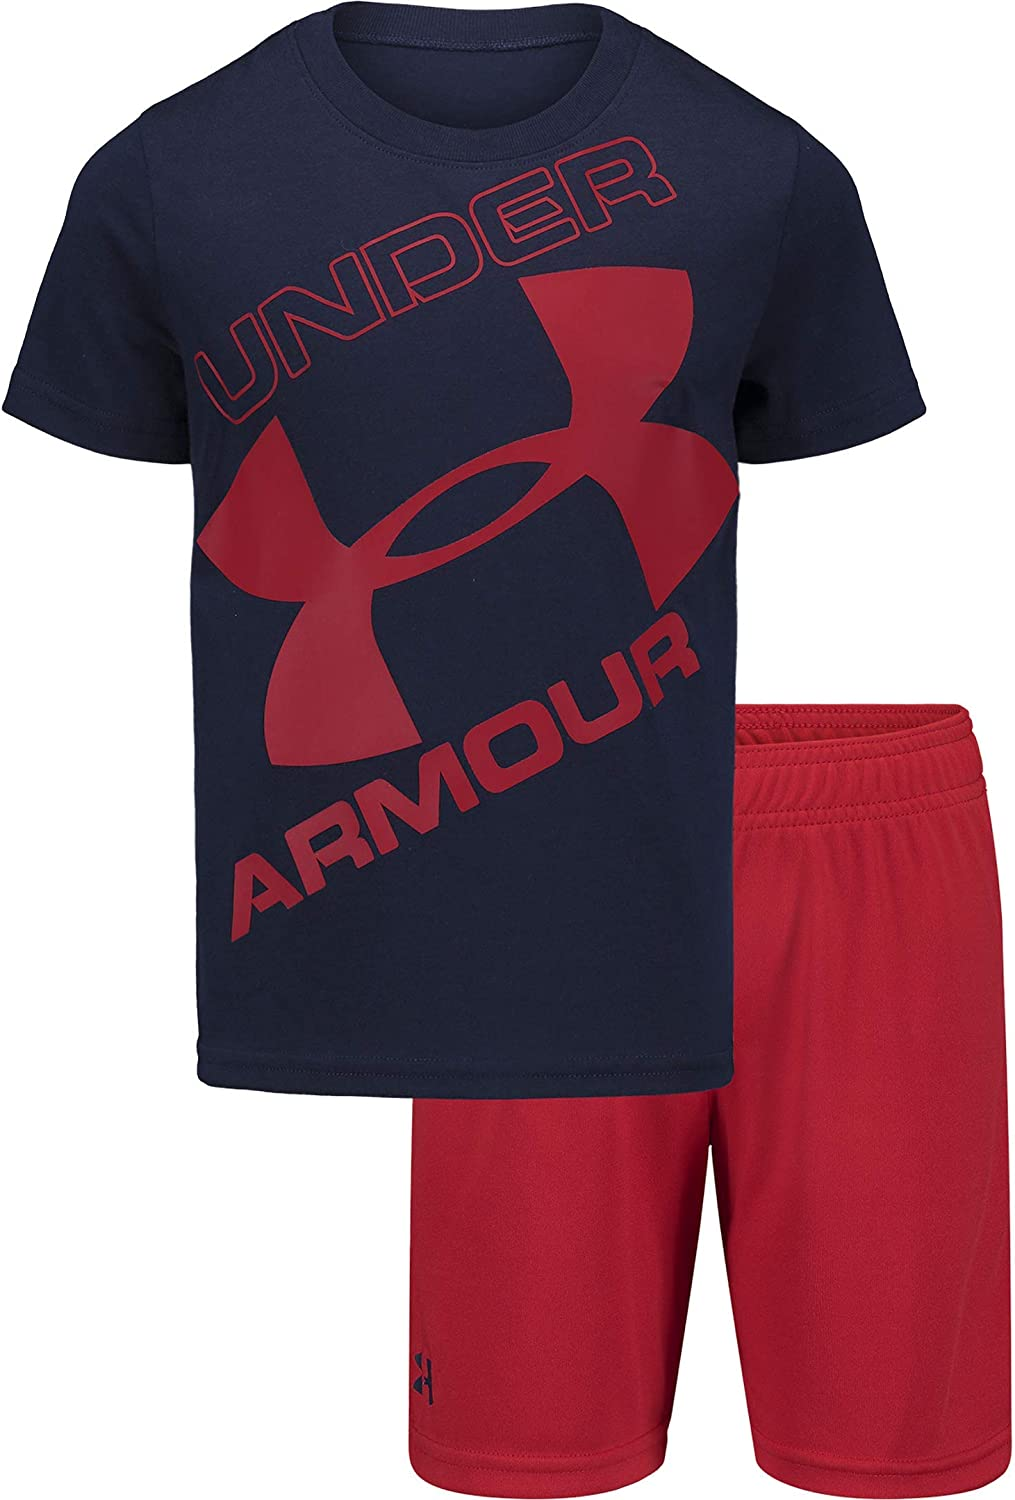 New Toddler Boys Under Armour Graphite T-shirt Size 3T